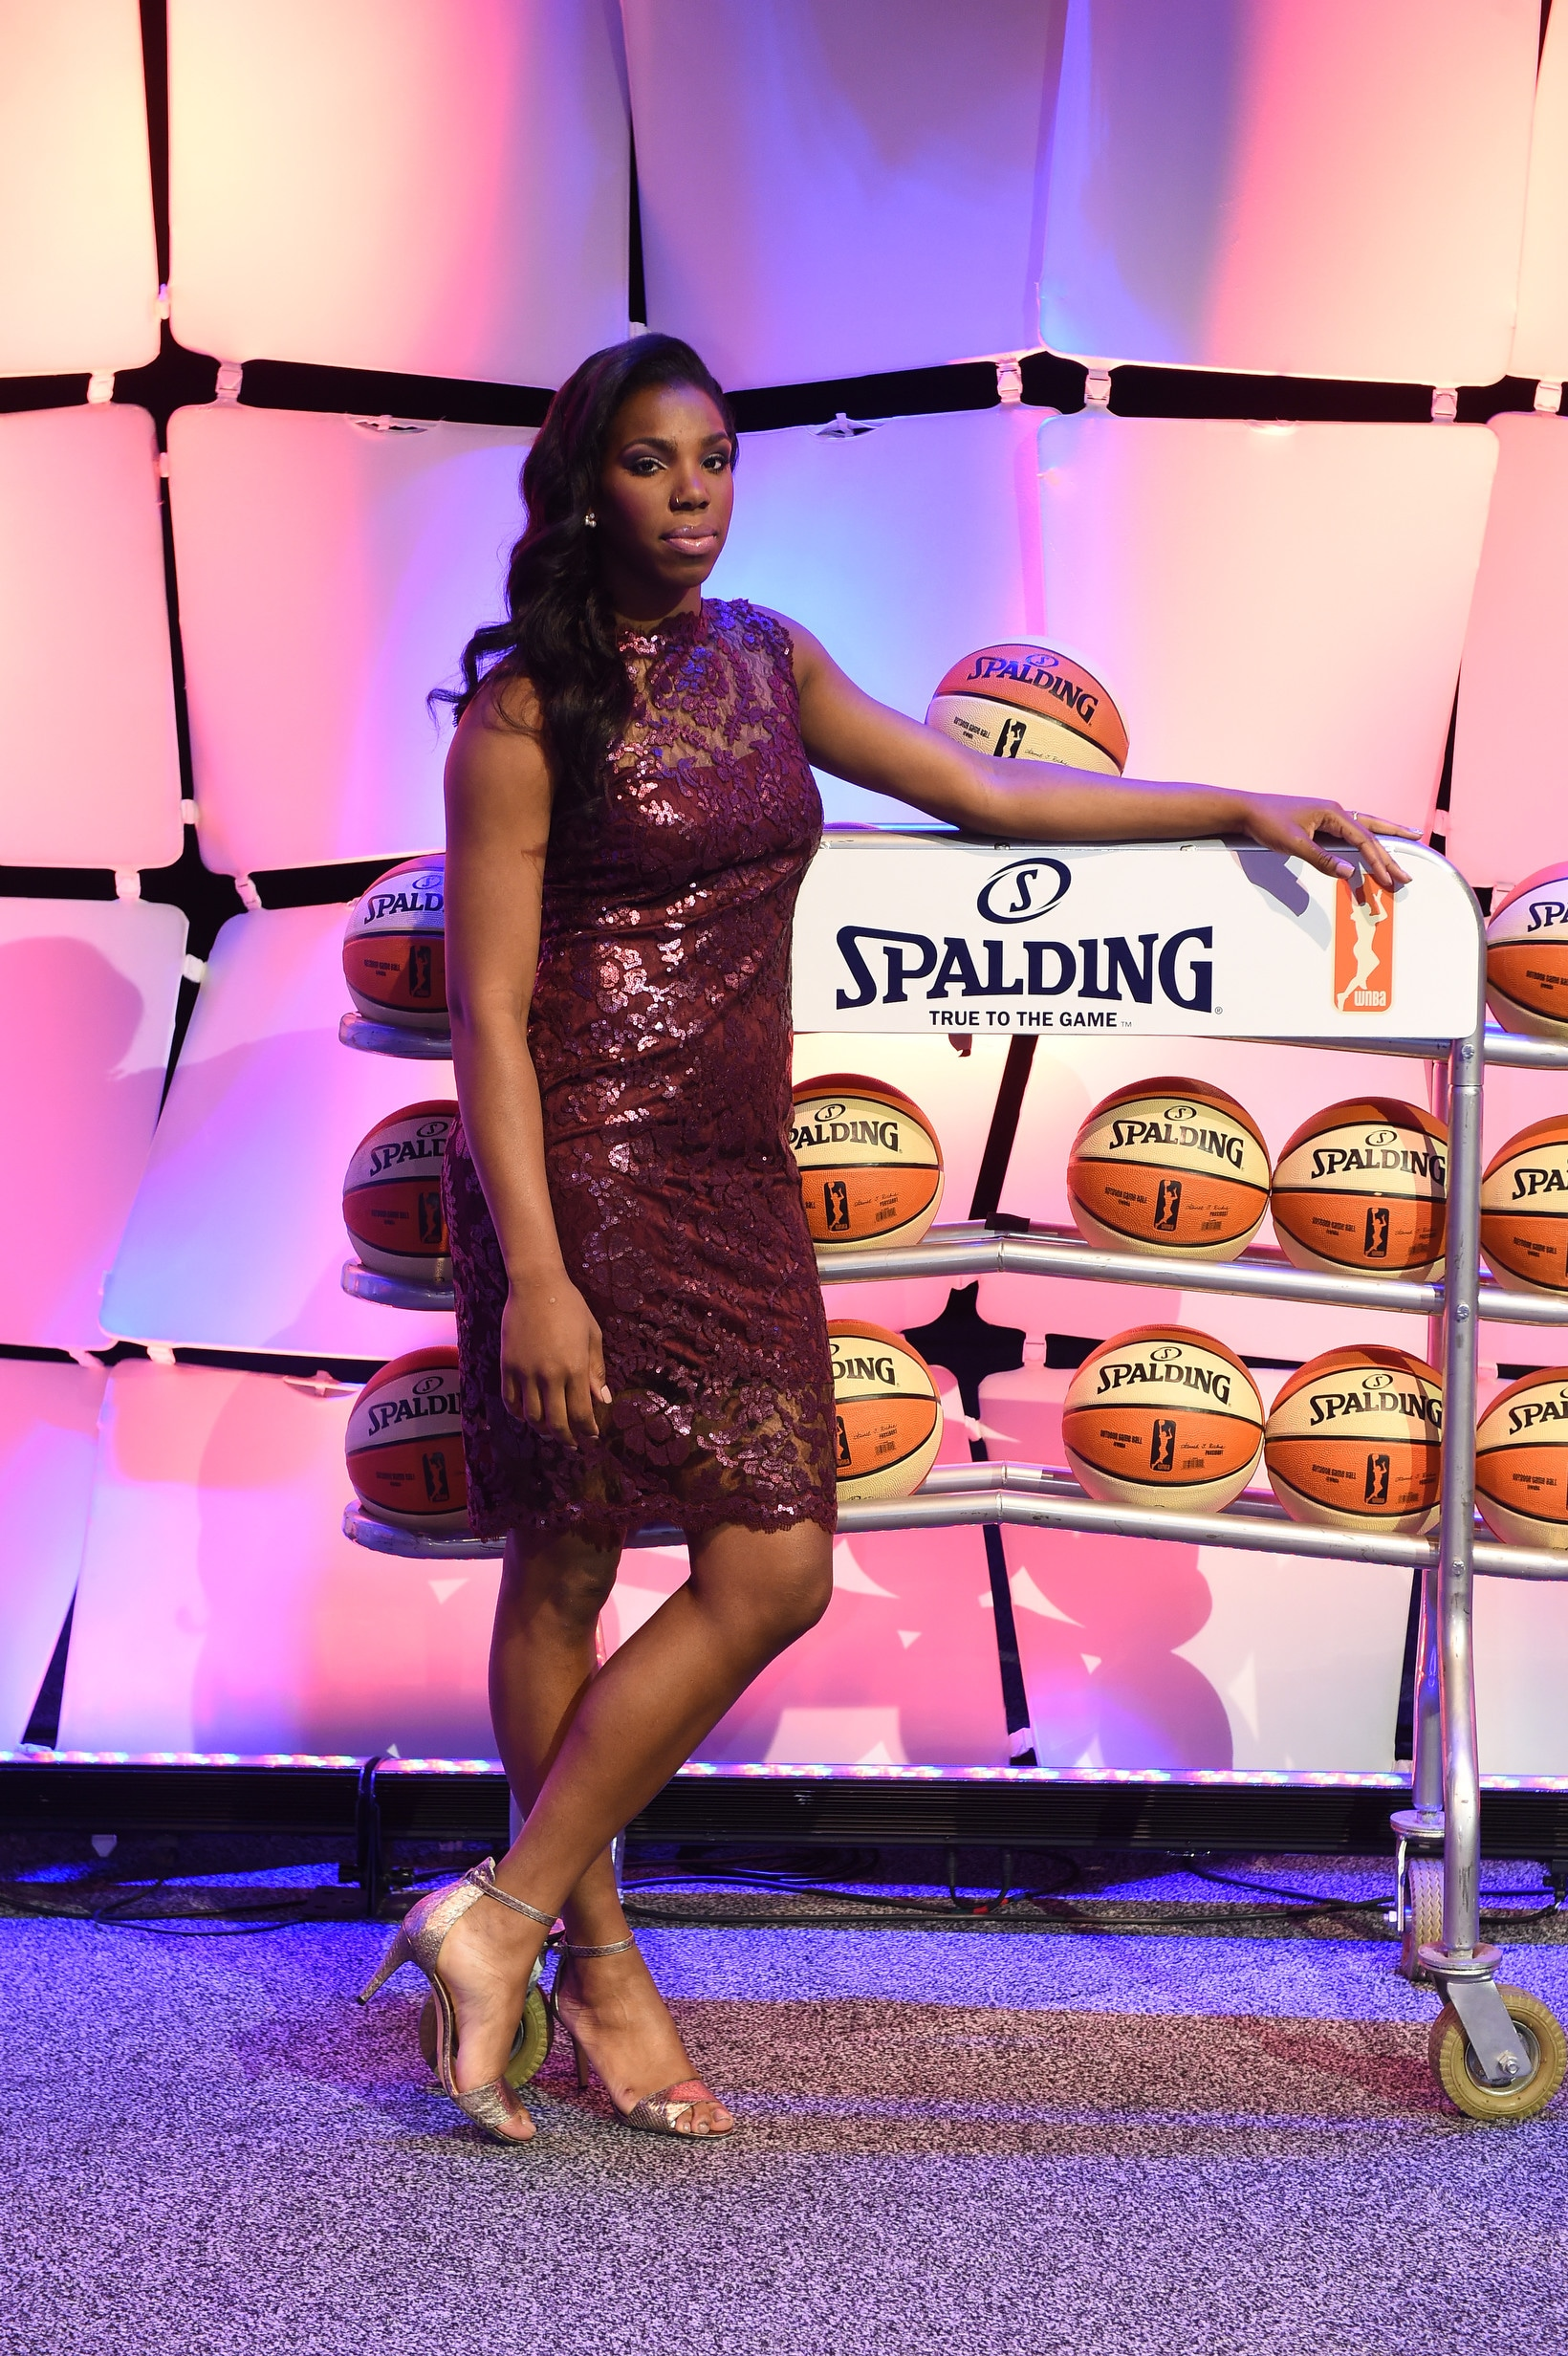 UNCASVILLE, CT - APRIL 16:  WNBA Draft Prospect Reshanda Gray poses for a photo during the 2015 WNBA Draft Presented By State Farm on April 16, 2015 at Mohegan Sun Arena in Uncasville, Connecticut.  NOTE TO USER: User expressly acknowledges and agrees that, by downloading and/or using this Photograph, user is consenting to the terms and conditions of the Getty Images License Agreement. Mandatory Copyright Notice: Copyright 2015 NBAE  (Photo by Brian Babineau/NBAE via Getty Images)